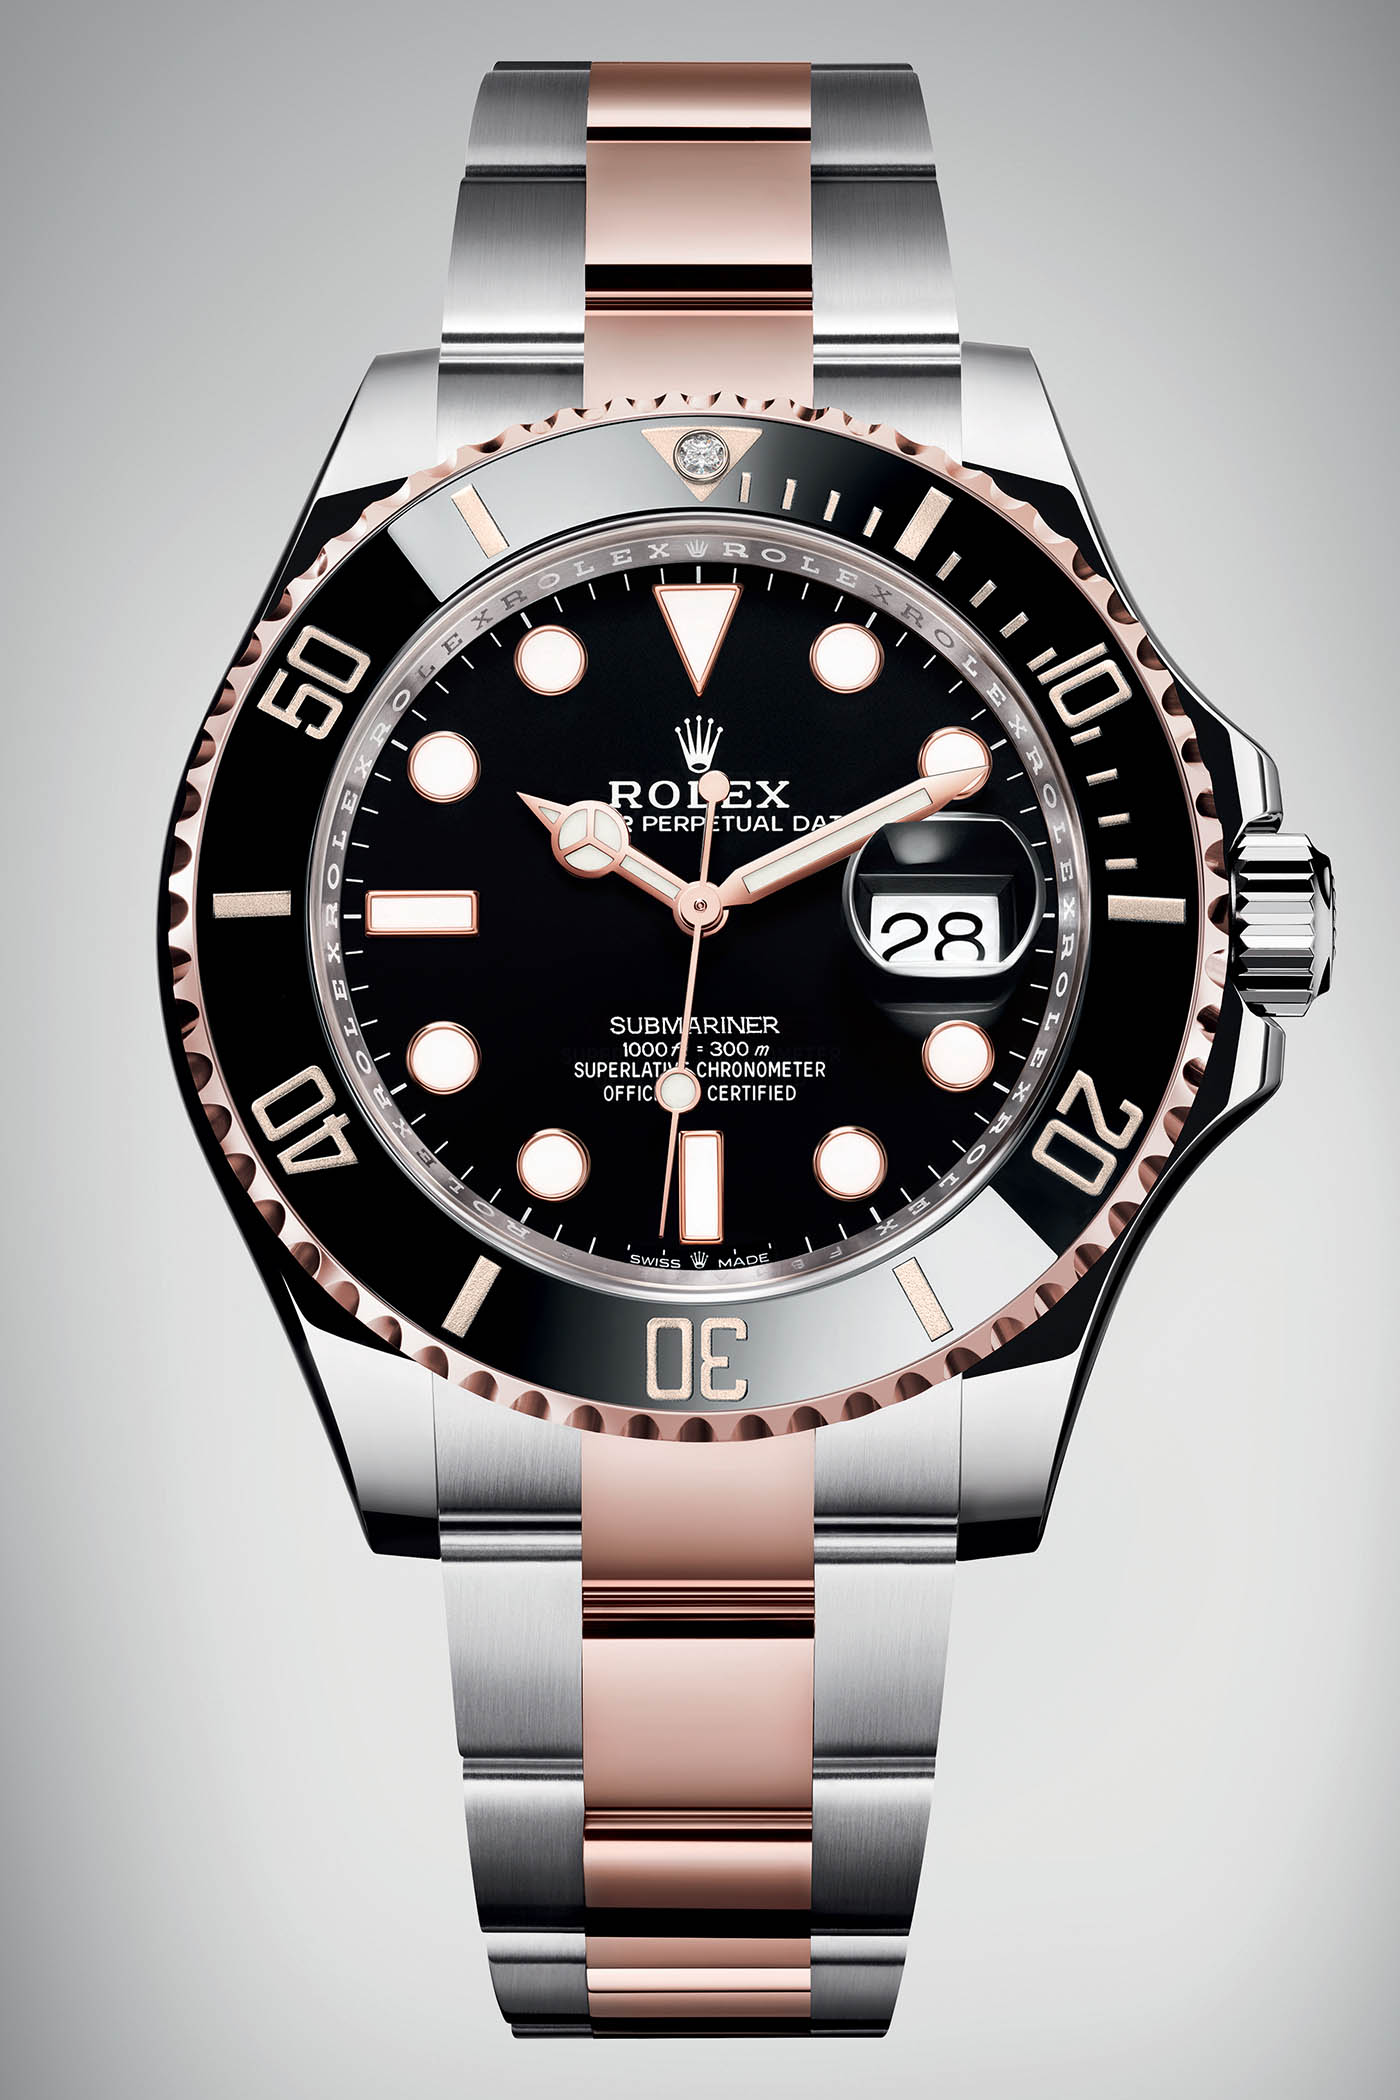 Rolex Submariner 36 Rolesor Everose - Rolex Baselworld 2019 - Rolex 2019 Predictions